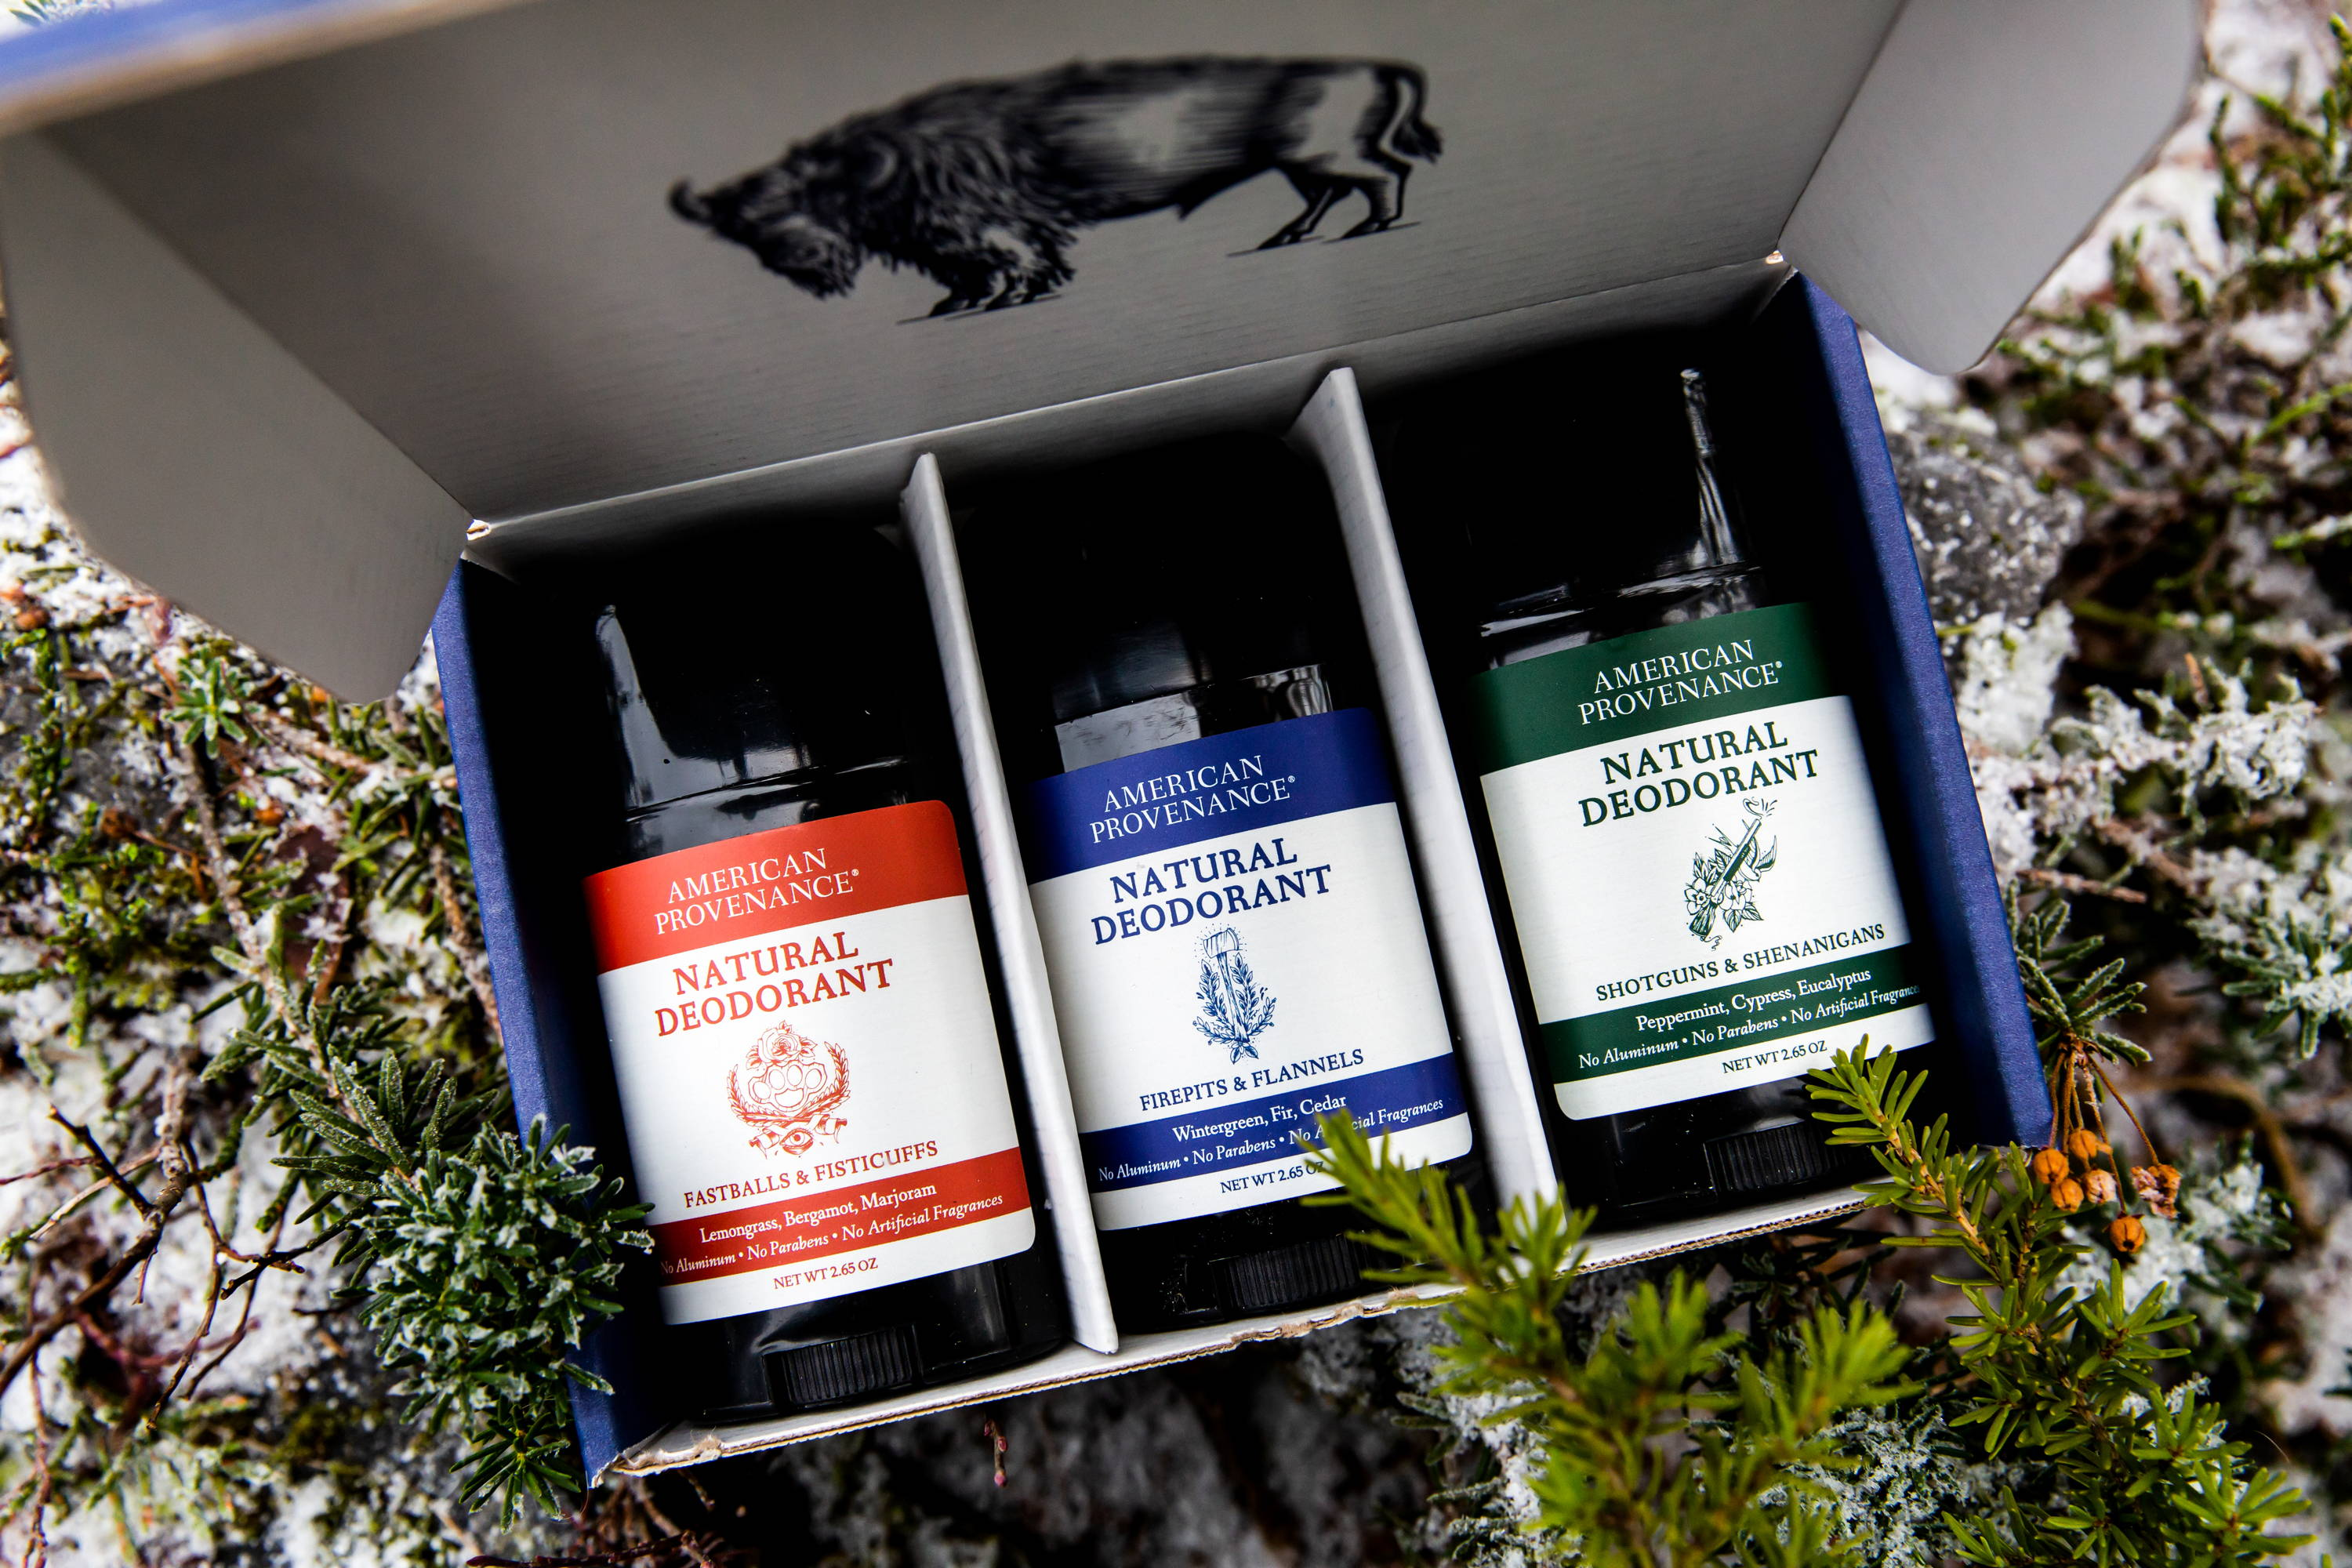 American Provenance now is offering Build Your Own 3 Packs of our Natural Deodorant. Choose from all 12 popular scents.